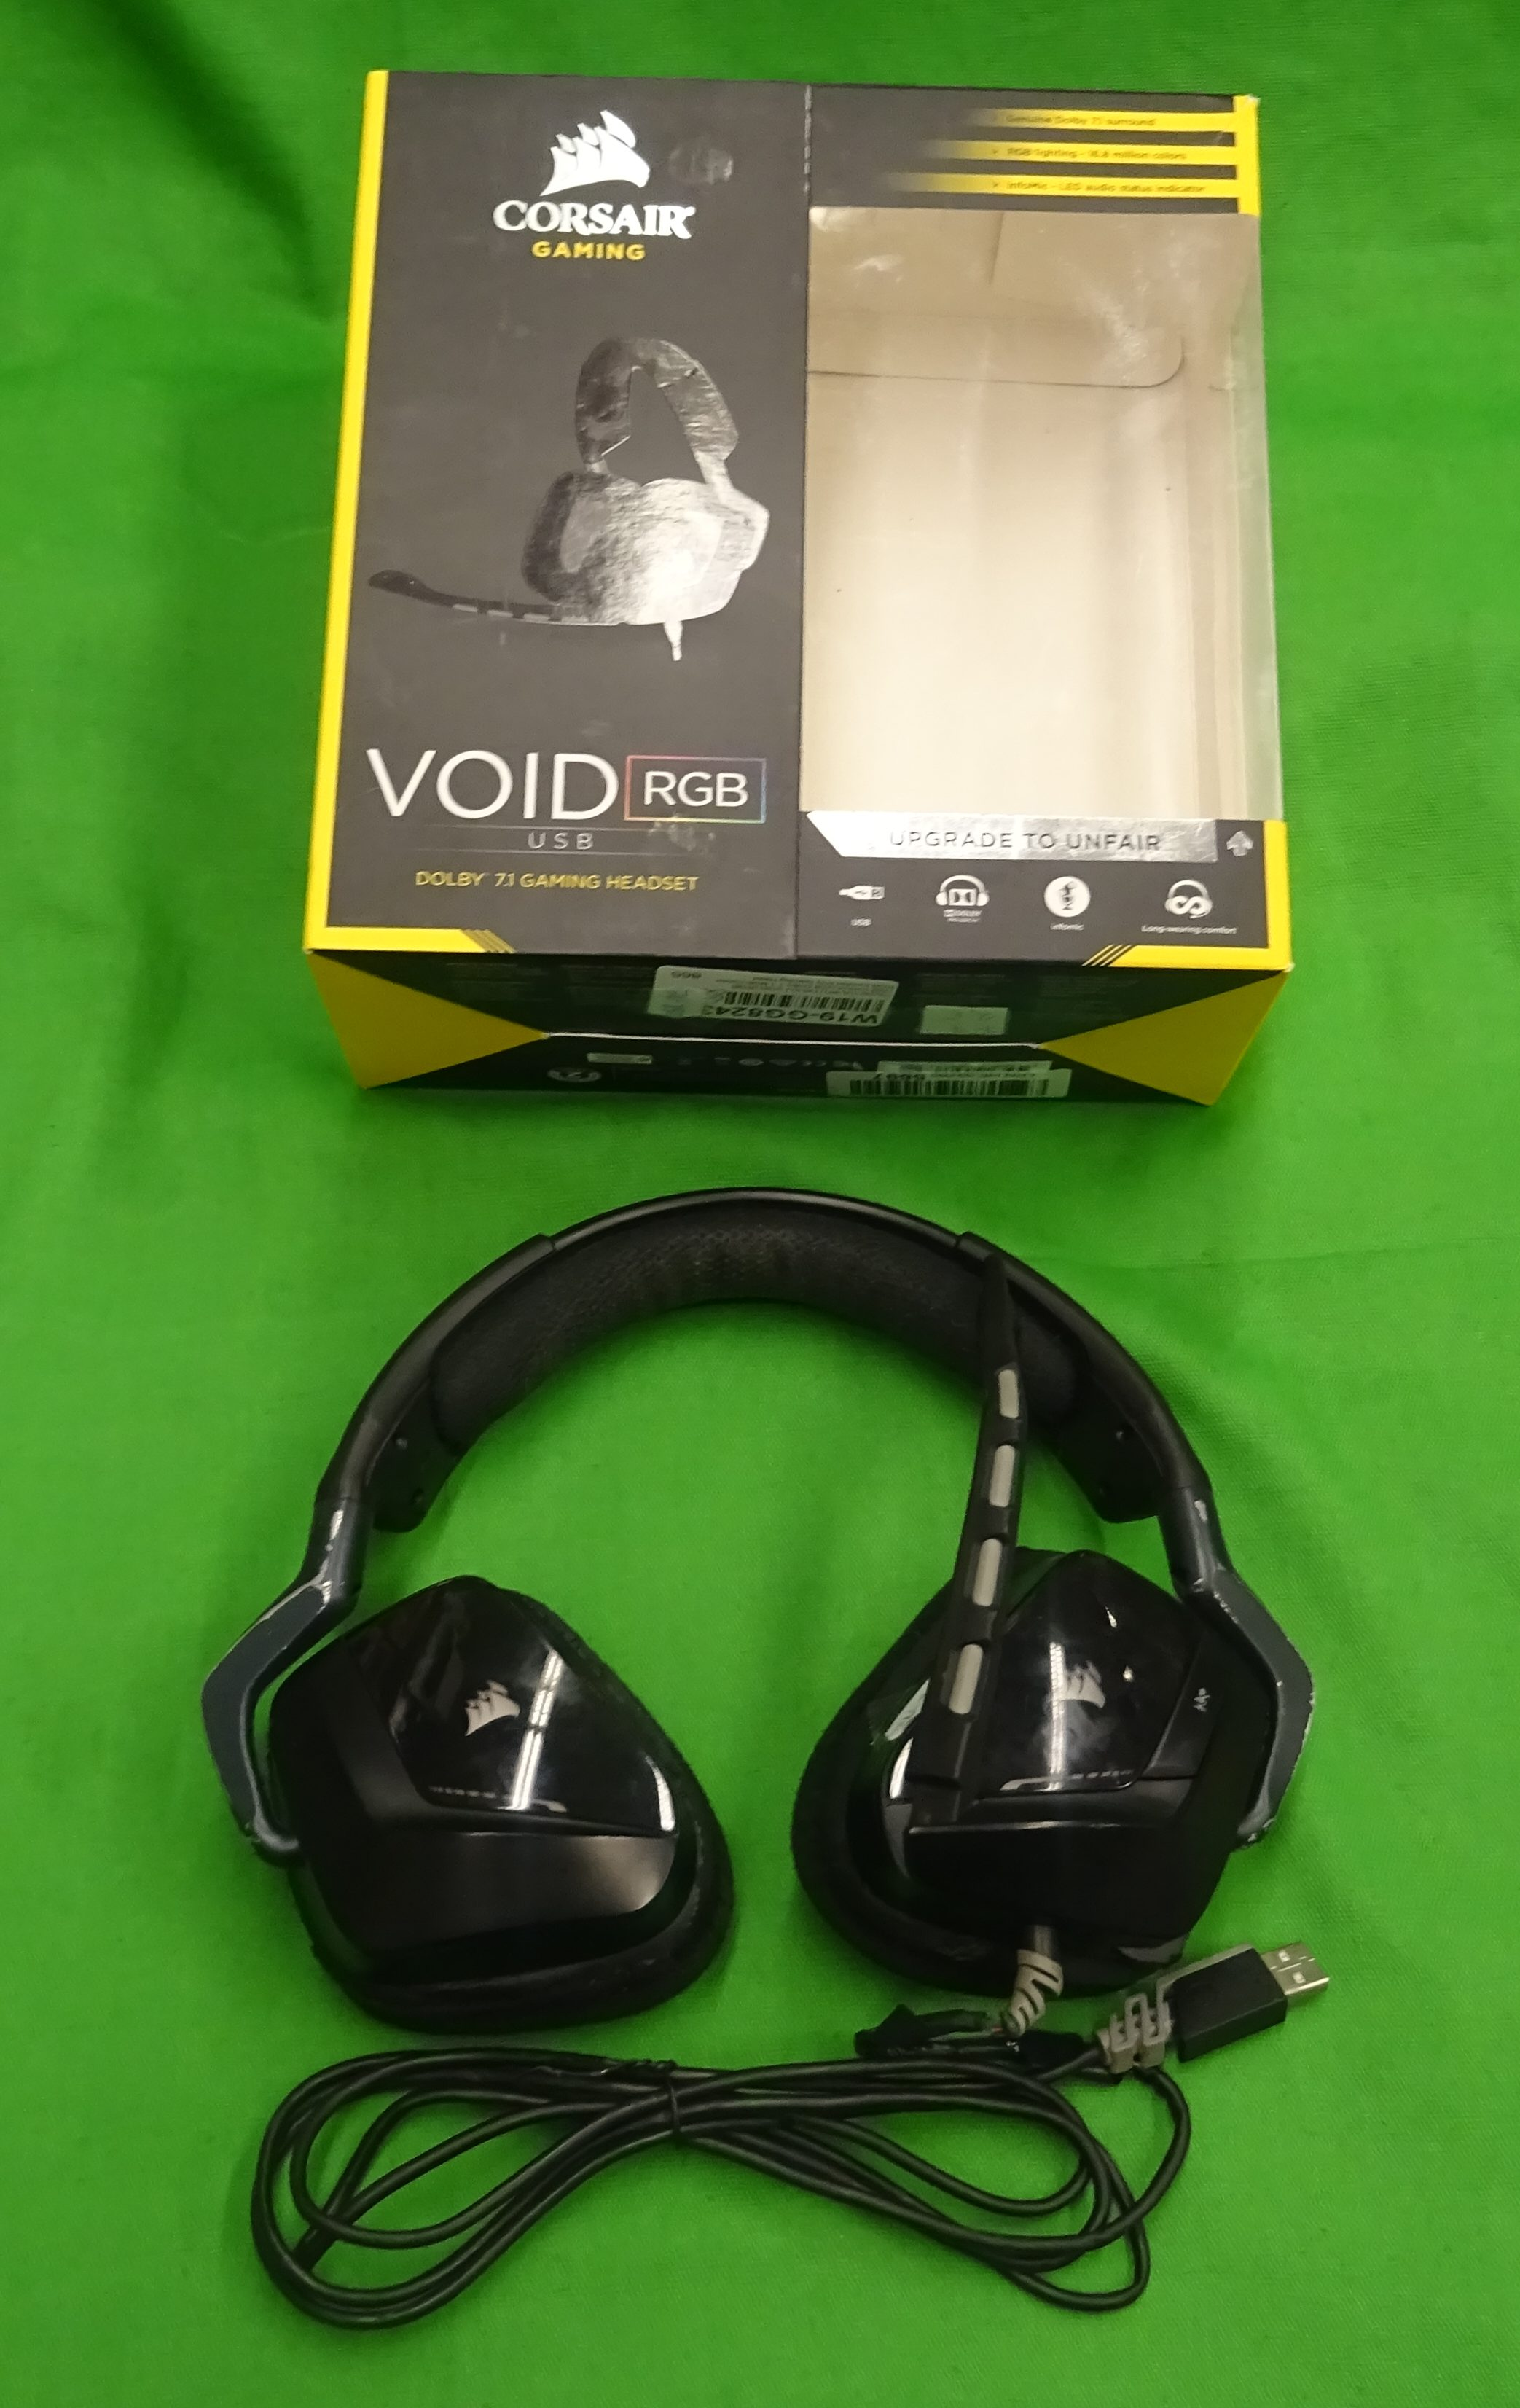 Corsair VOID PRO RGB USB Gamer Headset, kiemelt kép